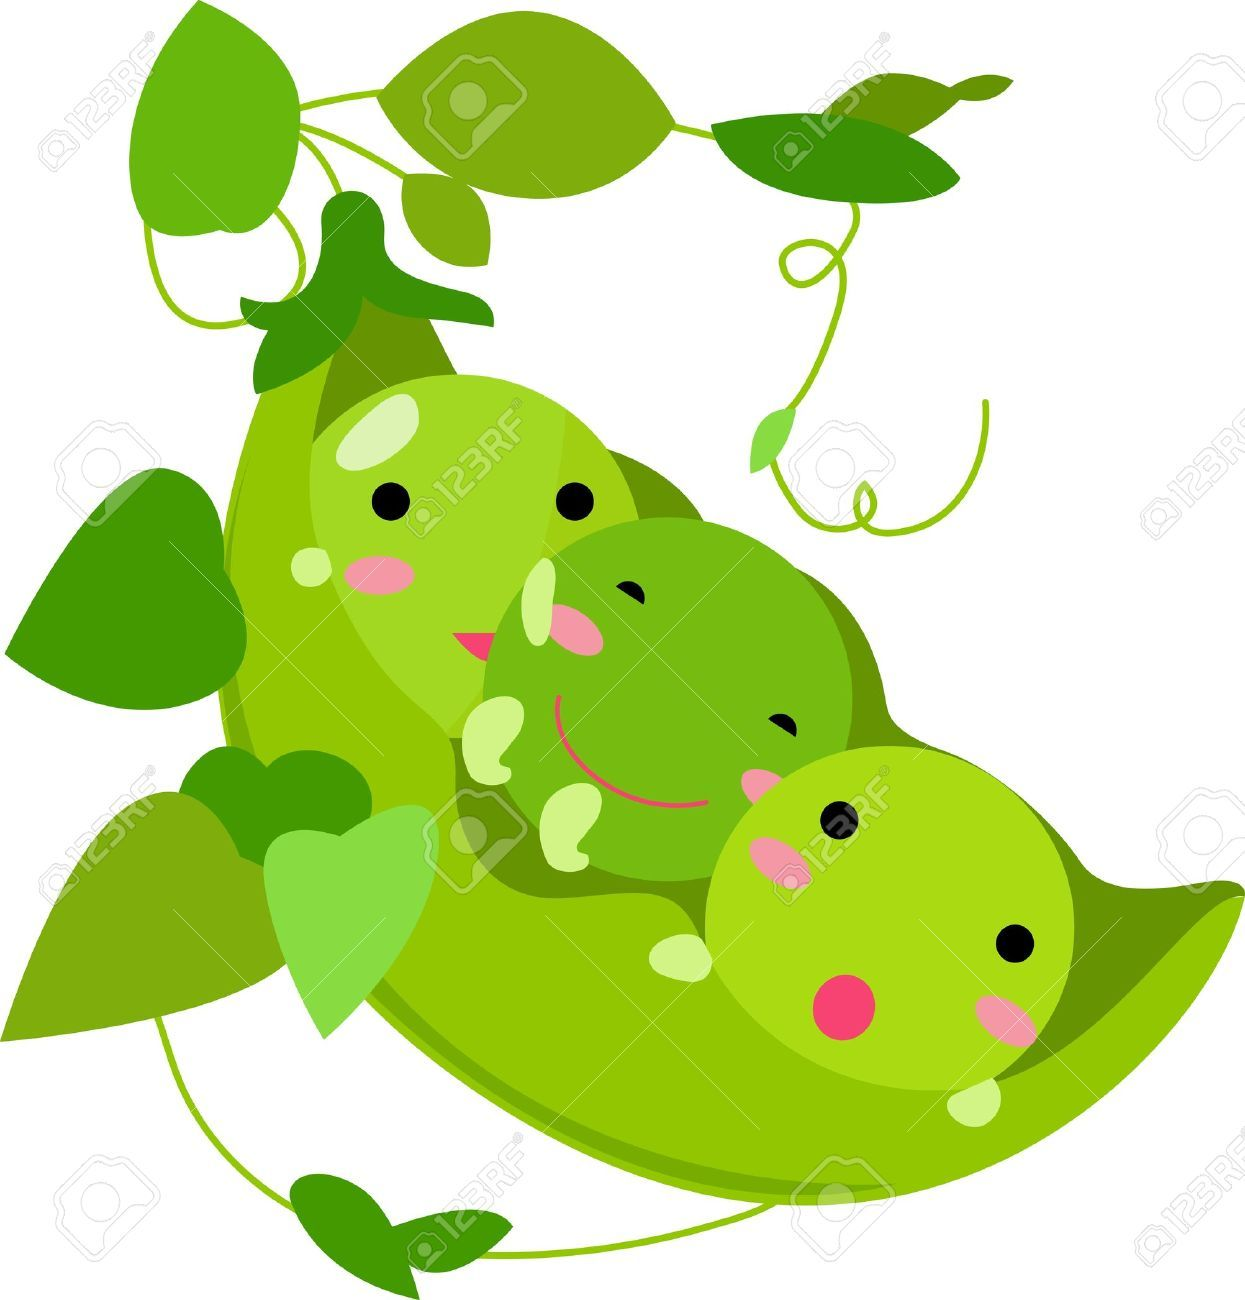 Three peas in a pod clipart clipart free stock Three peas in a pod clipart 4 » Clipart Portal clipart free stock